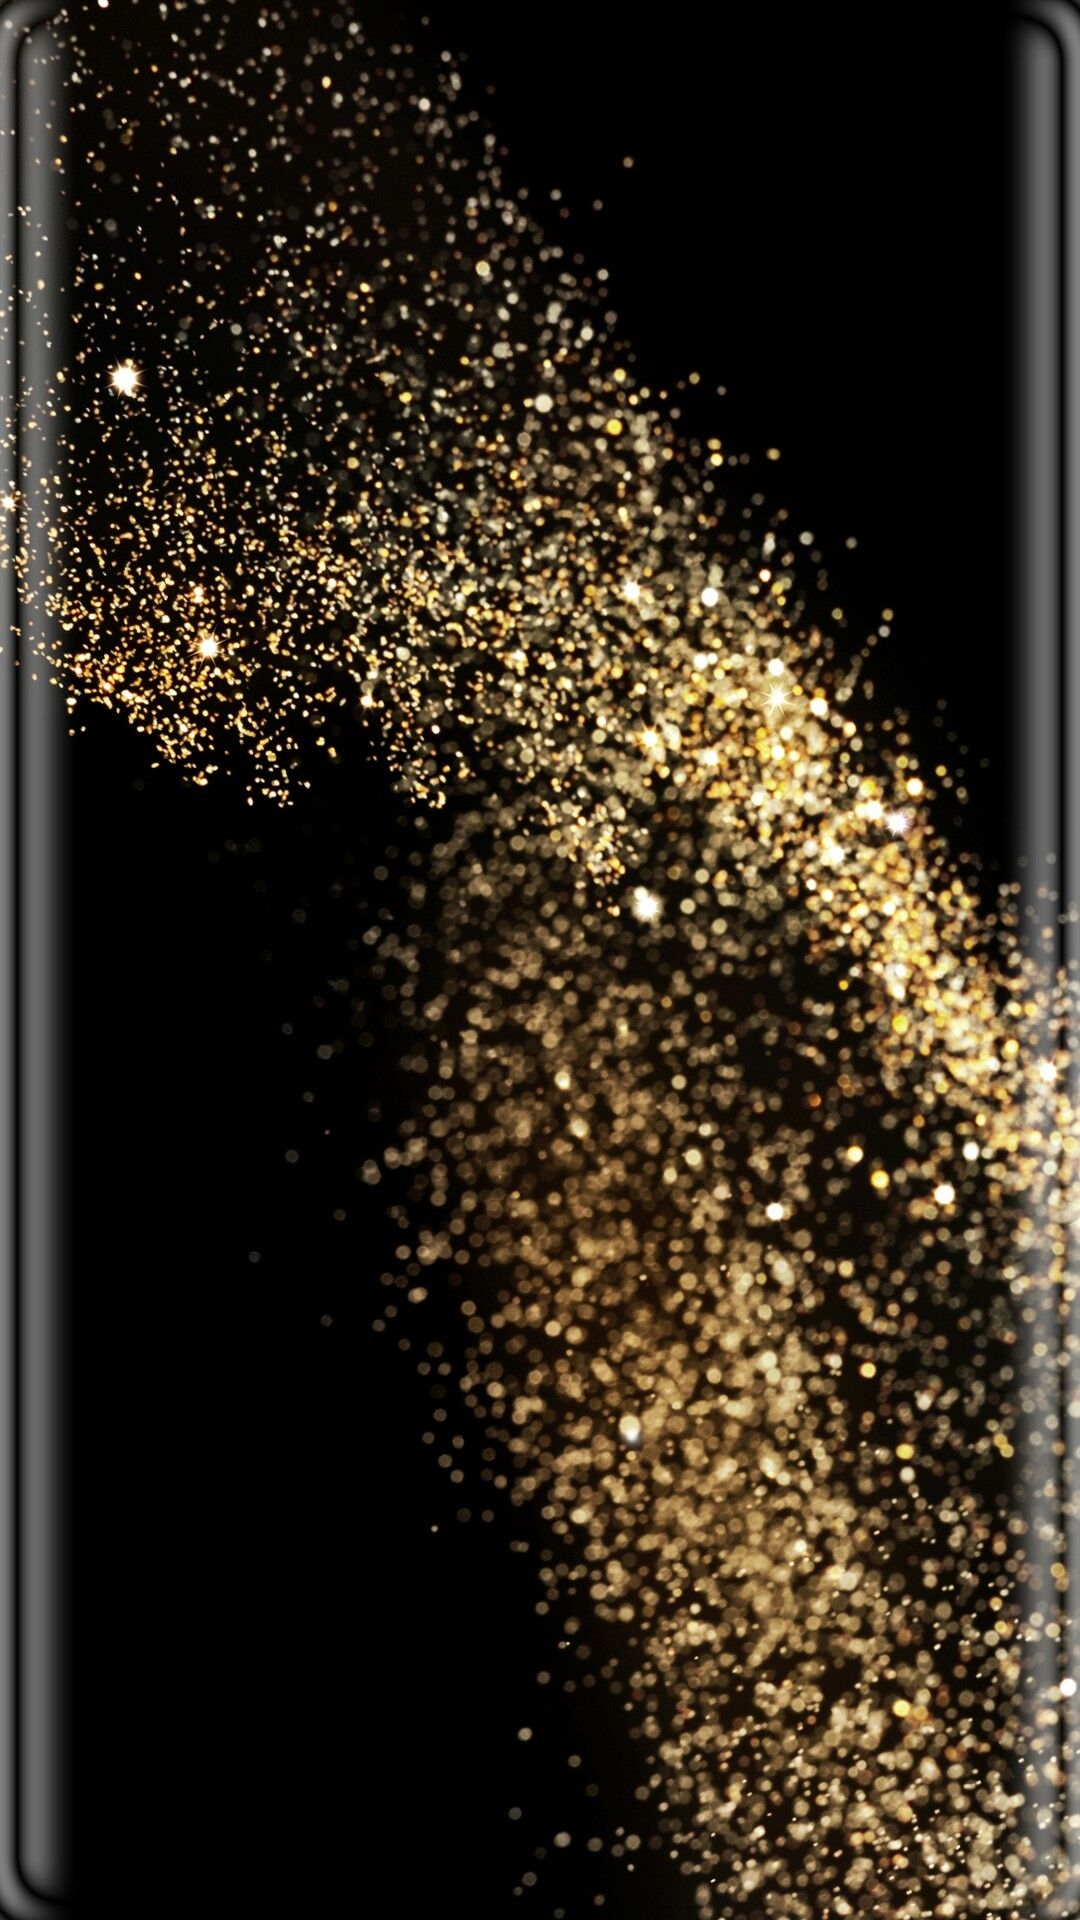 Black And Gold Wallpaper Hd Android Desktop Abstract